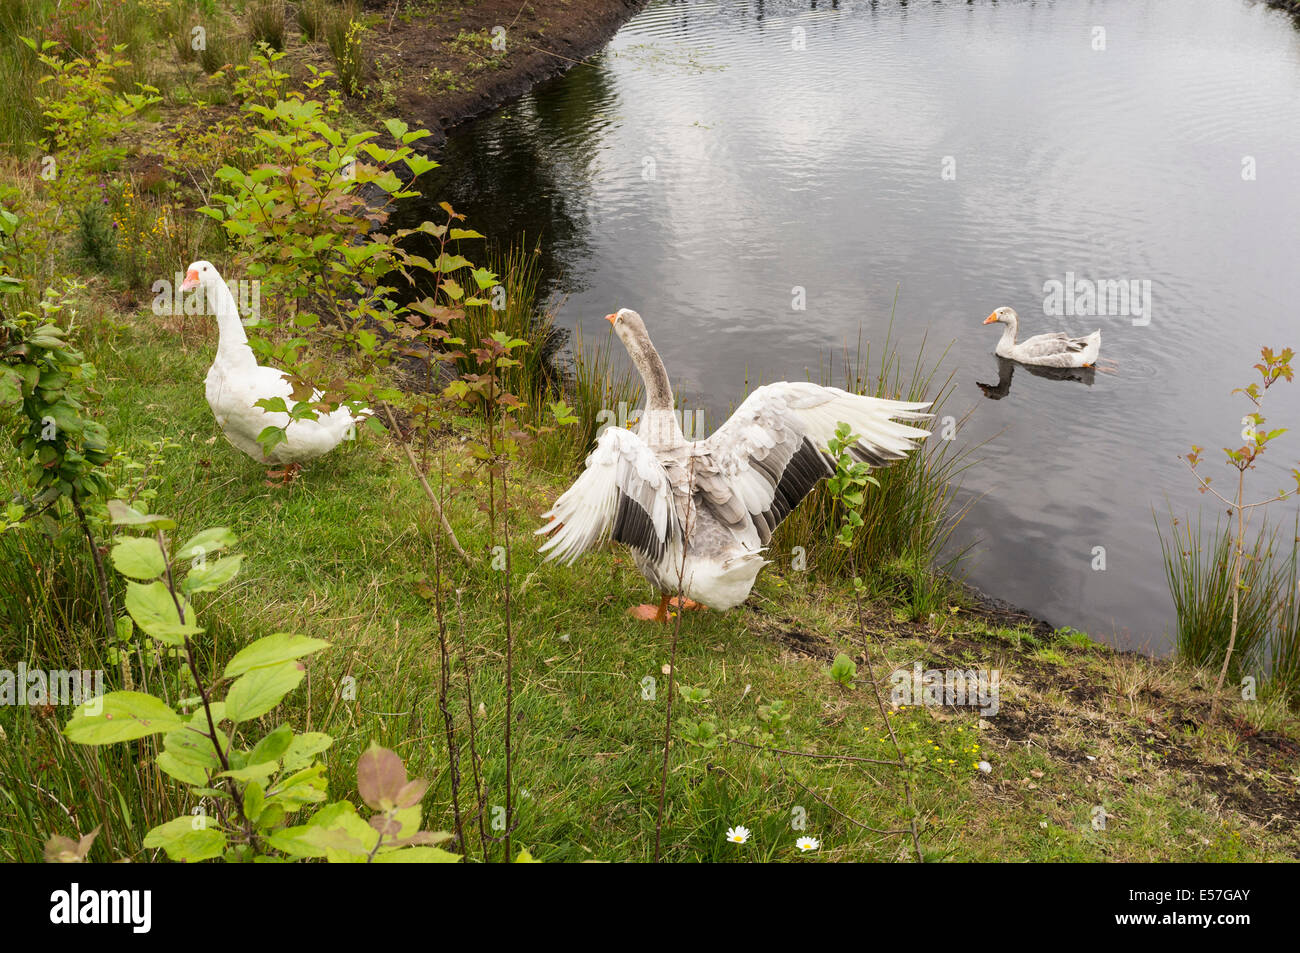 Geese living on the bog at Lullymore in rathangan, Kildare, Ireland - Stock Image